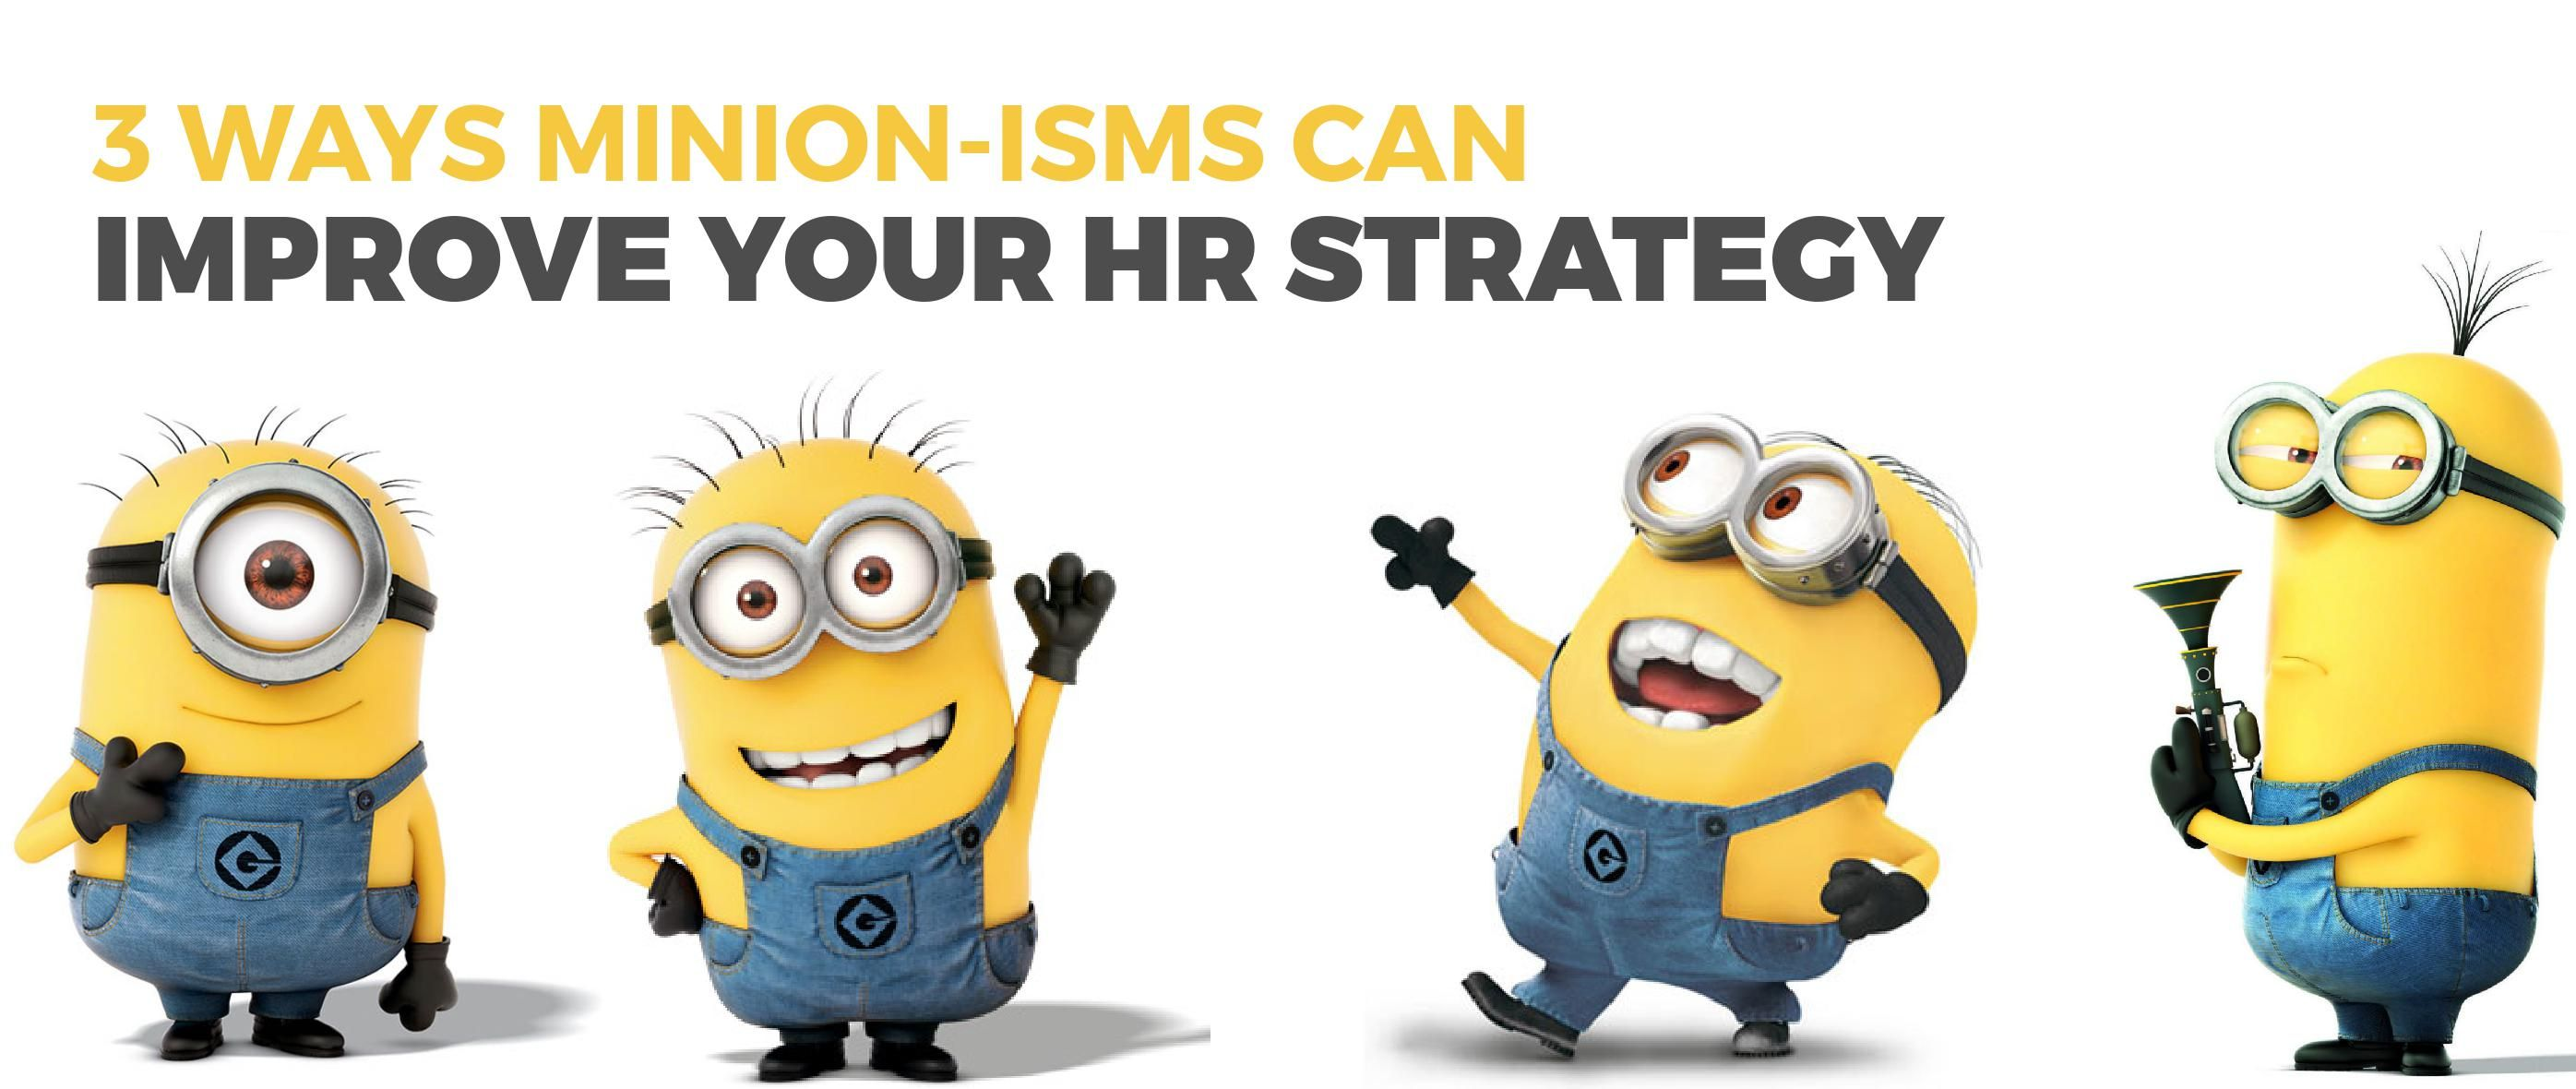 Minion  Hr Strategy  Small Business Tips  Ideas